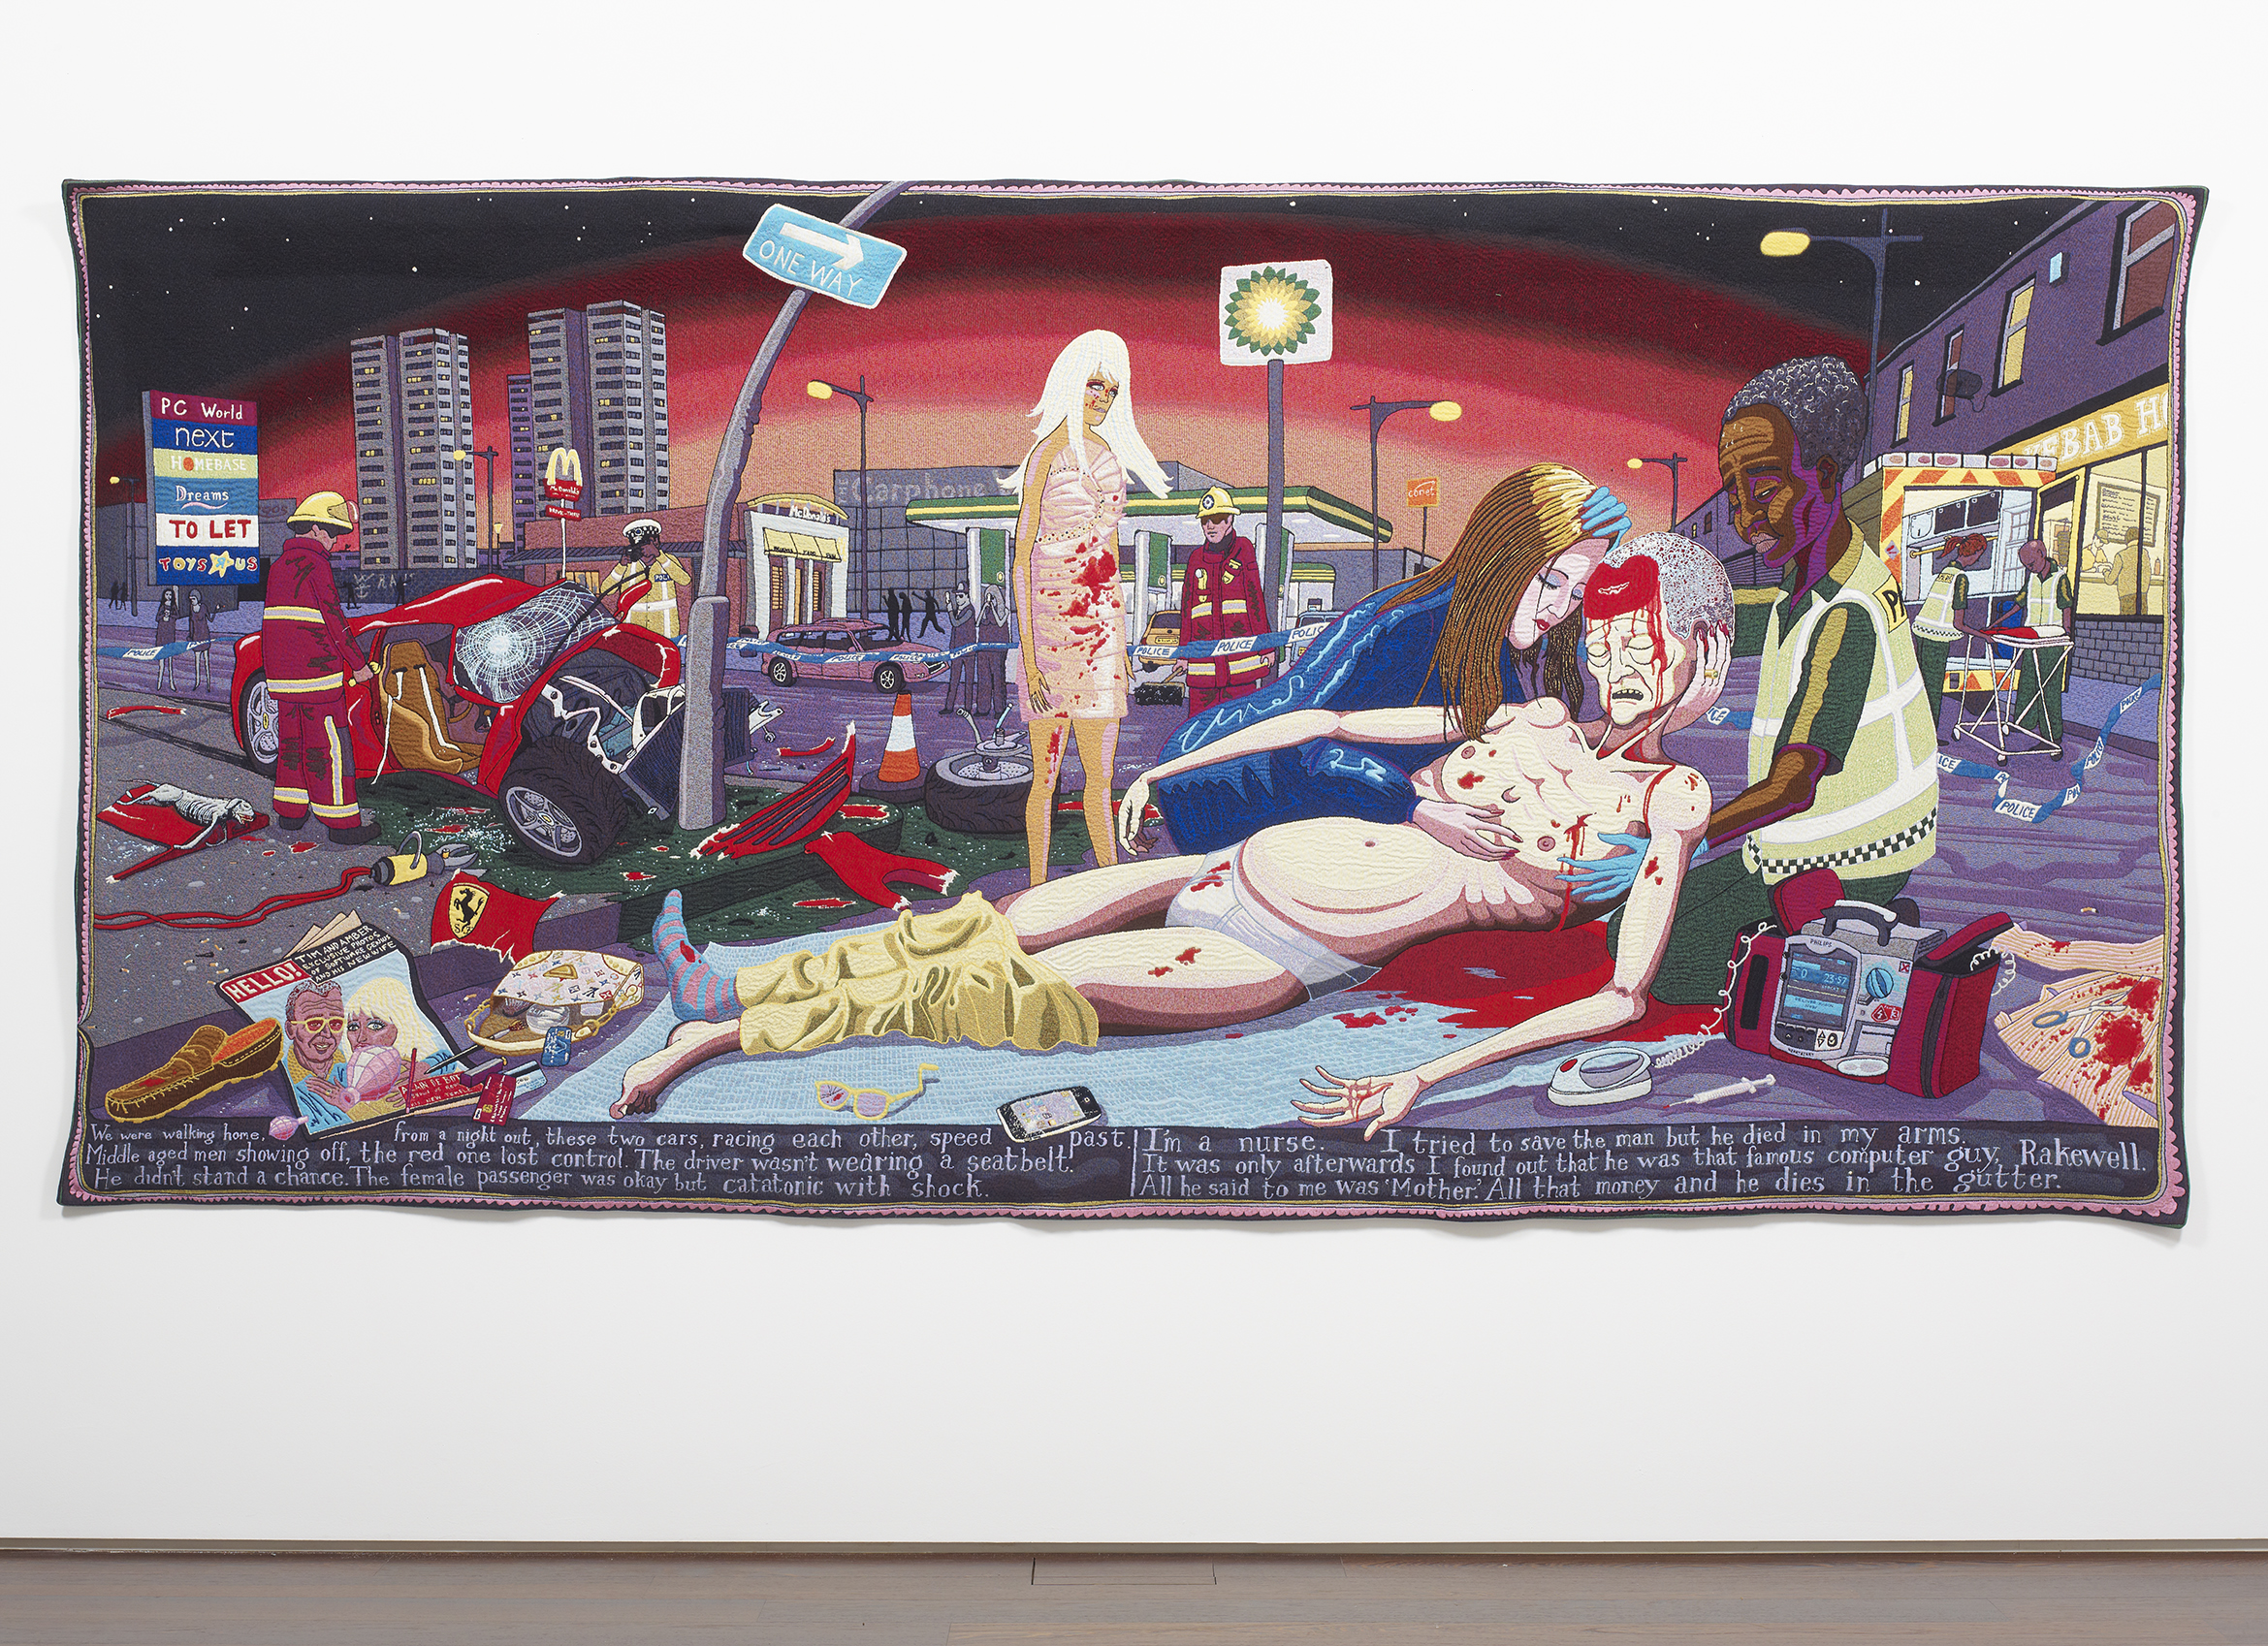 Grayson Perry #Lamentation 2012 © the artist. Arts Council Collection, Southbank Centre, London and British Council. Gift of the artist and Victoria Miro Gallery with the support of Channel 4 Television, the Art Fund and Sfumato Foundation with additional support from Alix Partners.